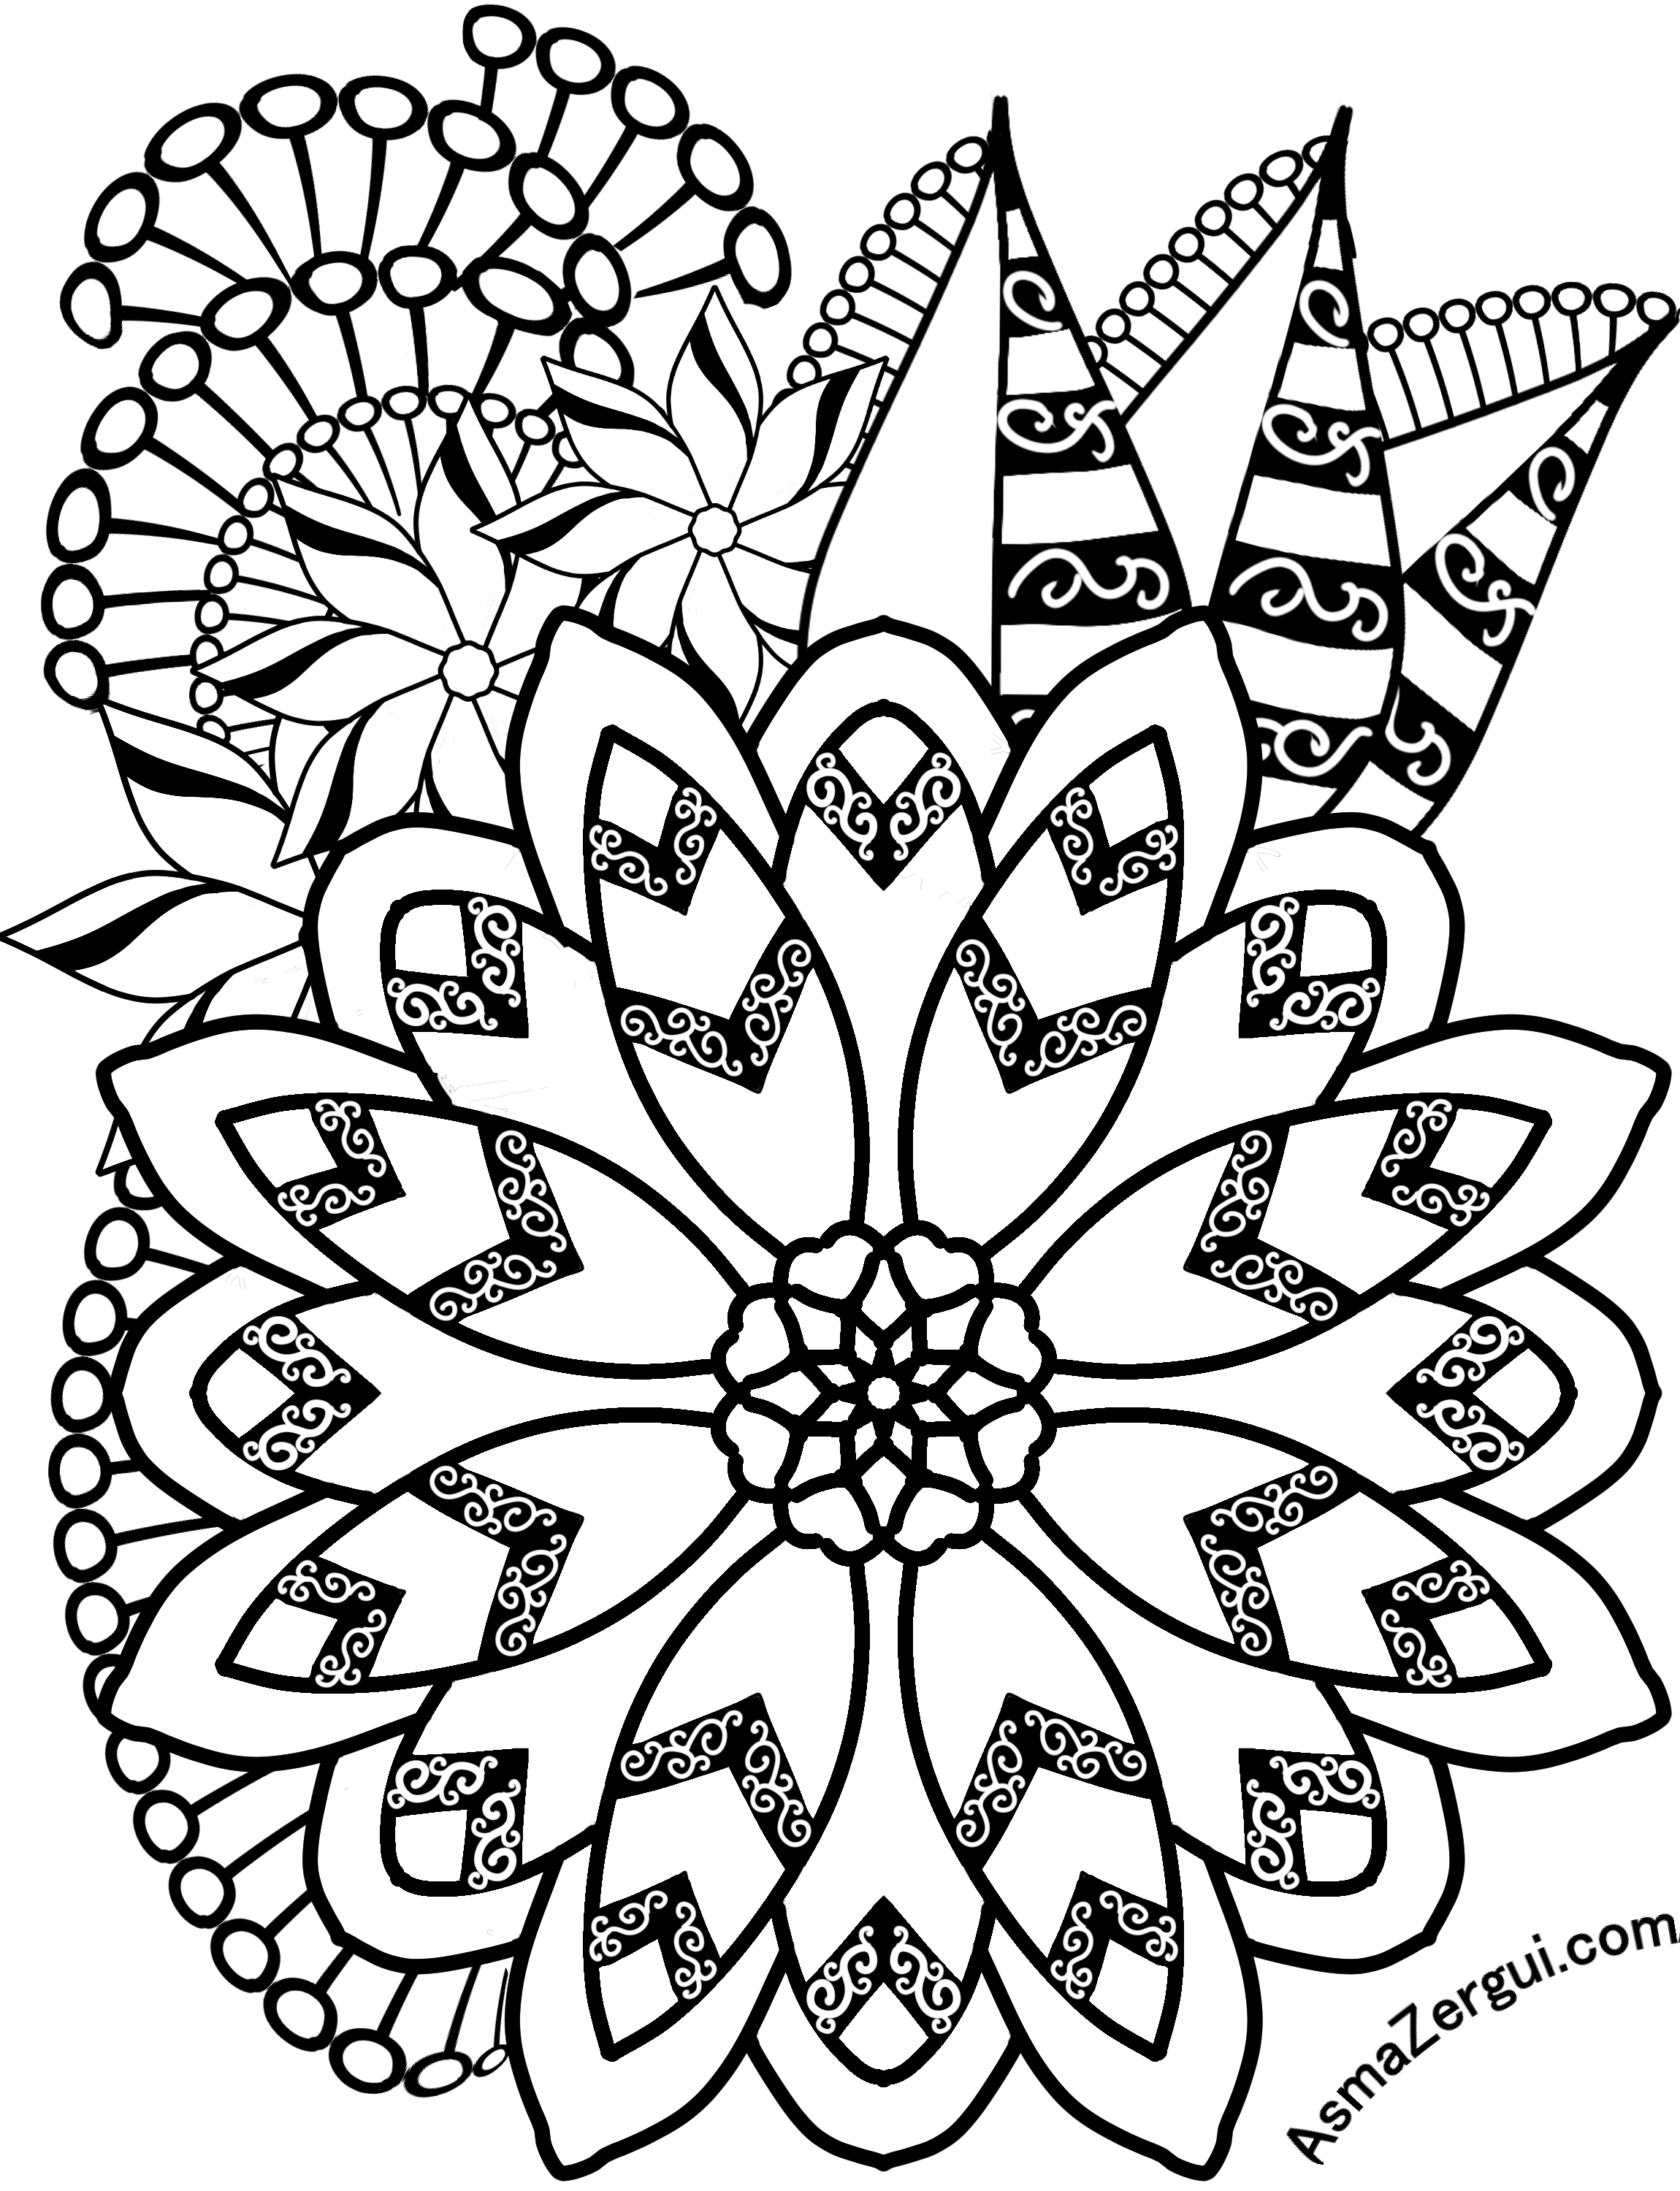 Free coloring pages adult coloring worldwide for Adult color page